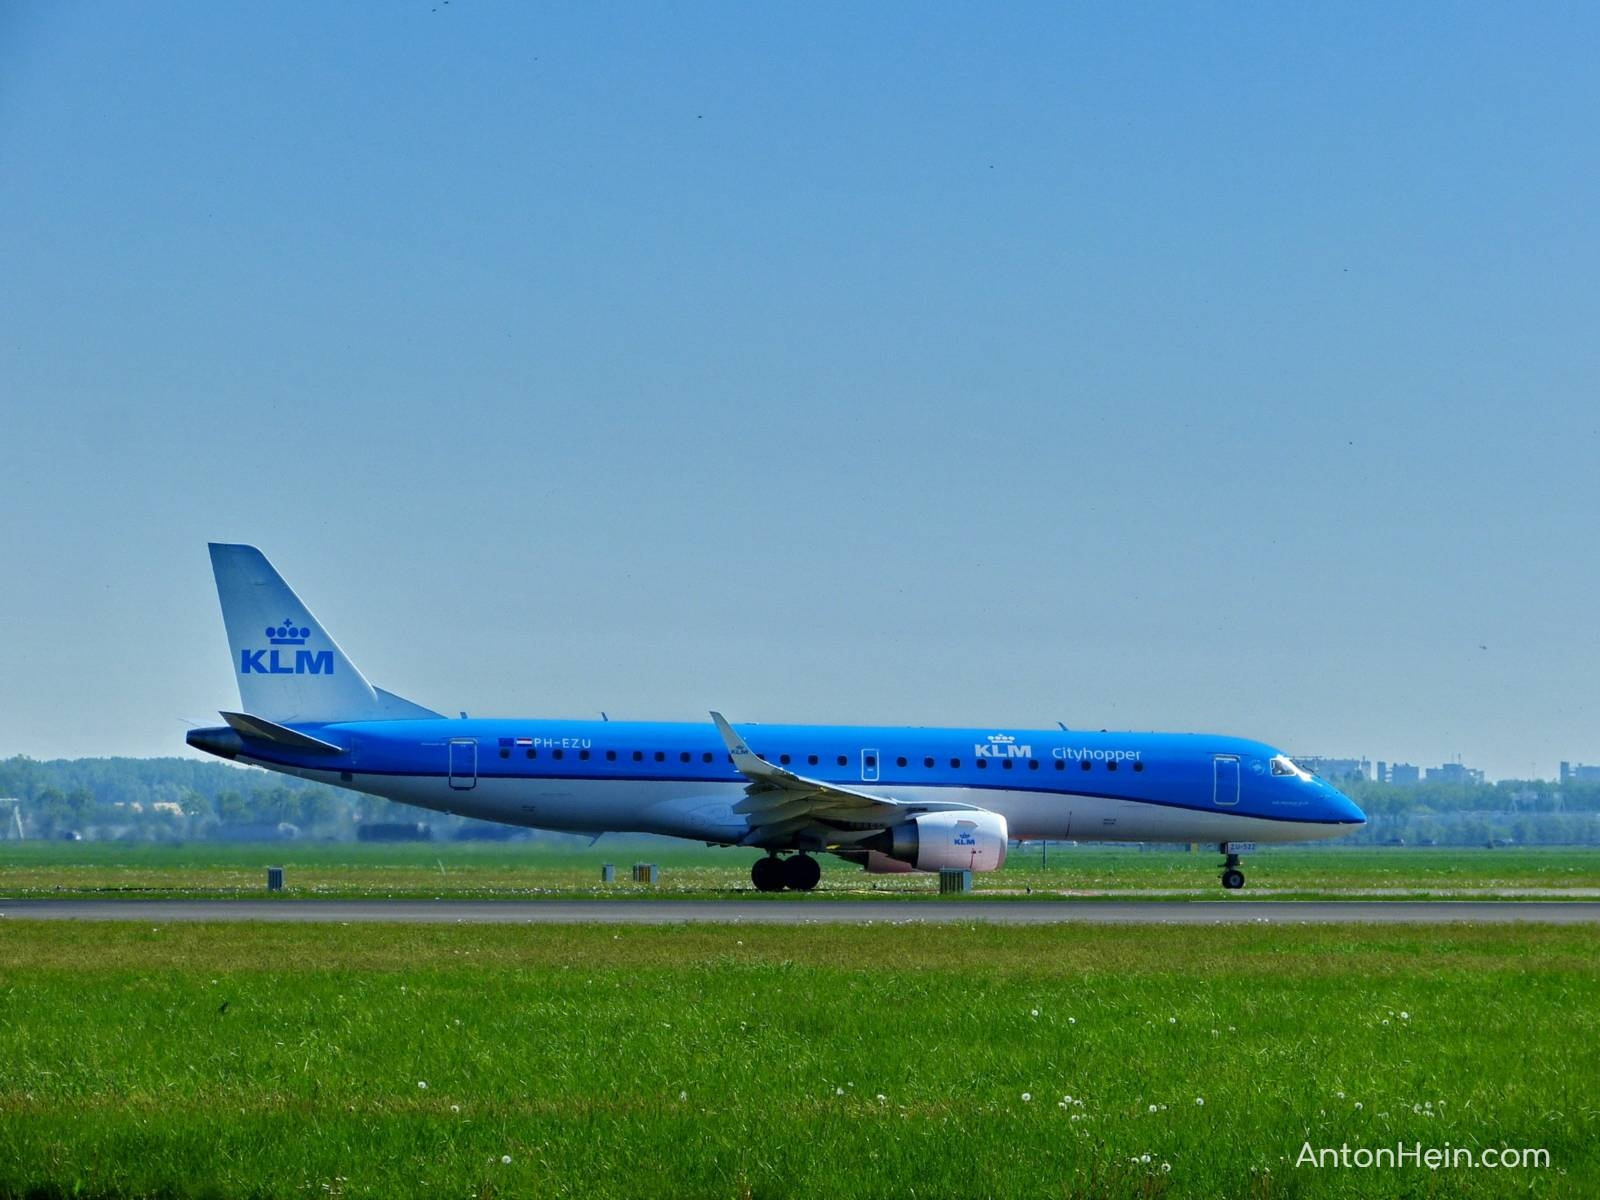 Why are KLM's planes blue?